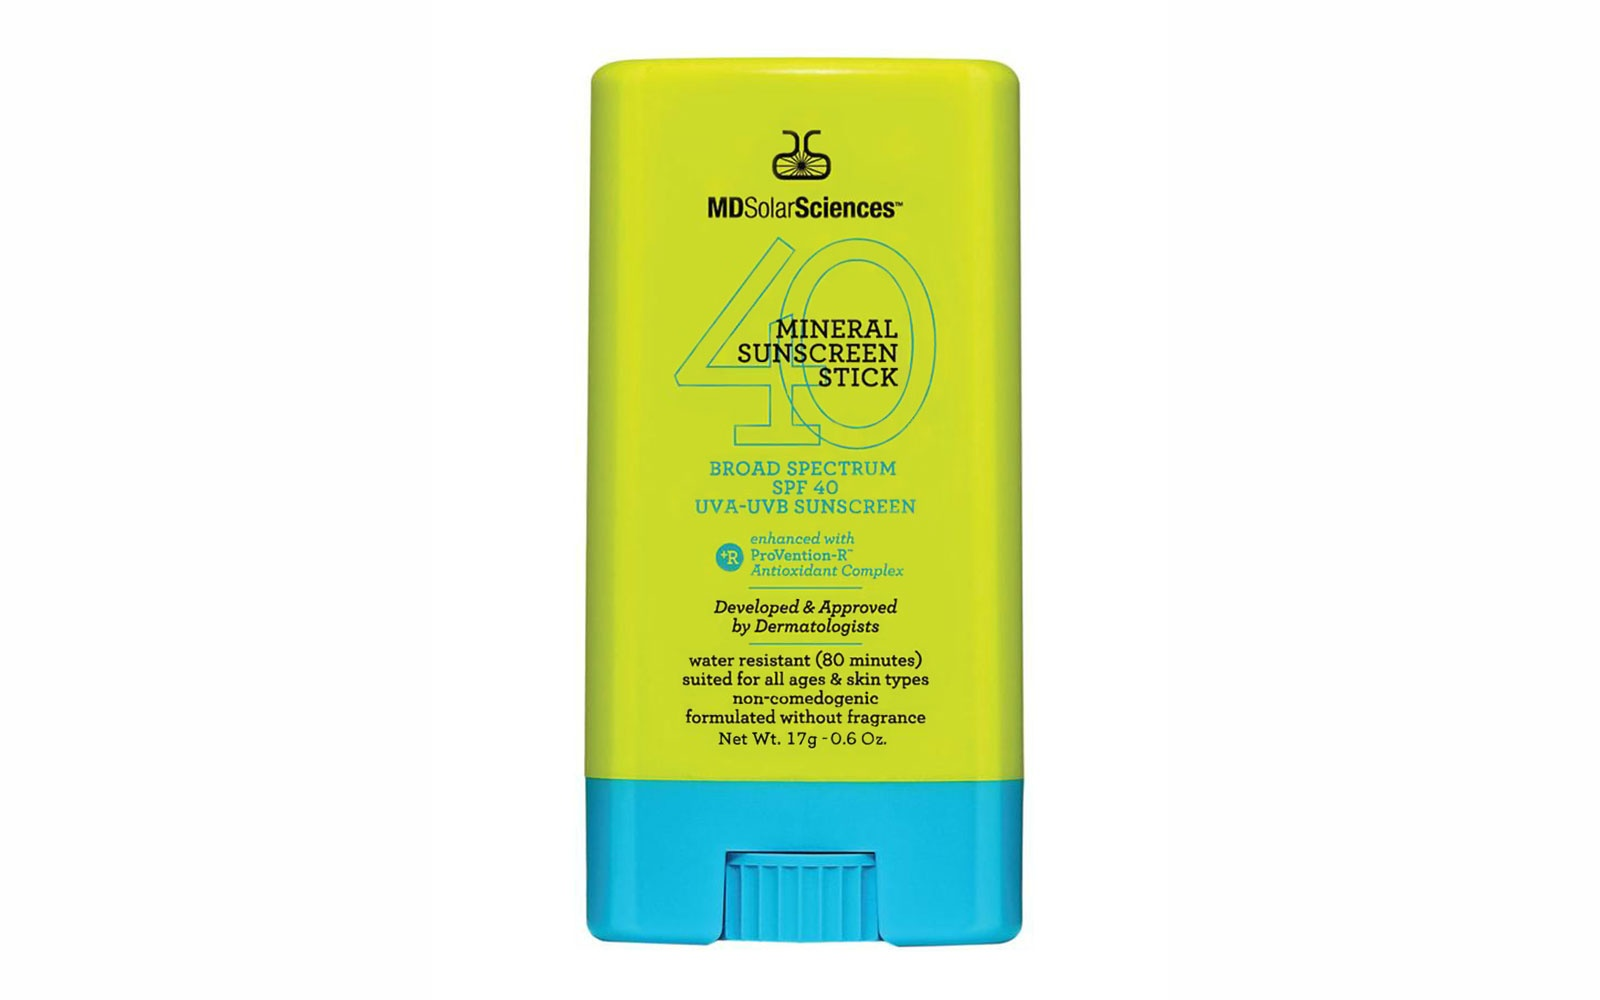 MD Solar Sciences Mineral Sunscreen Stick